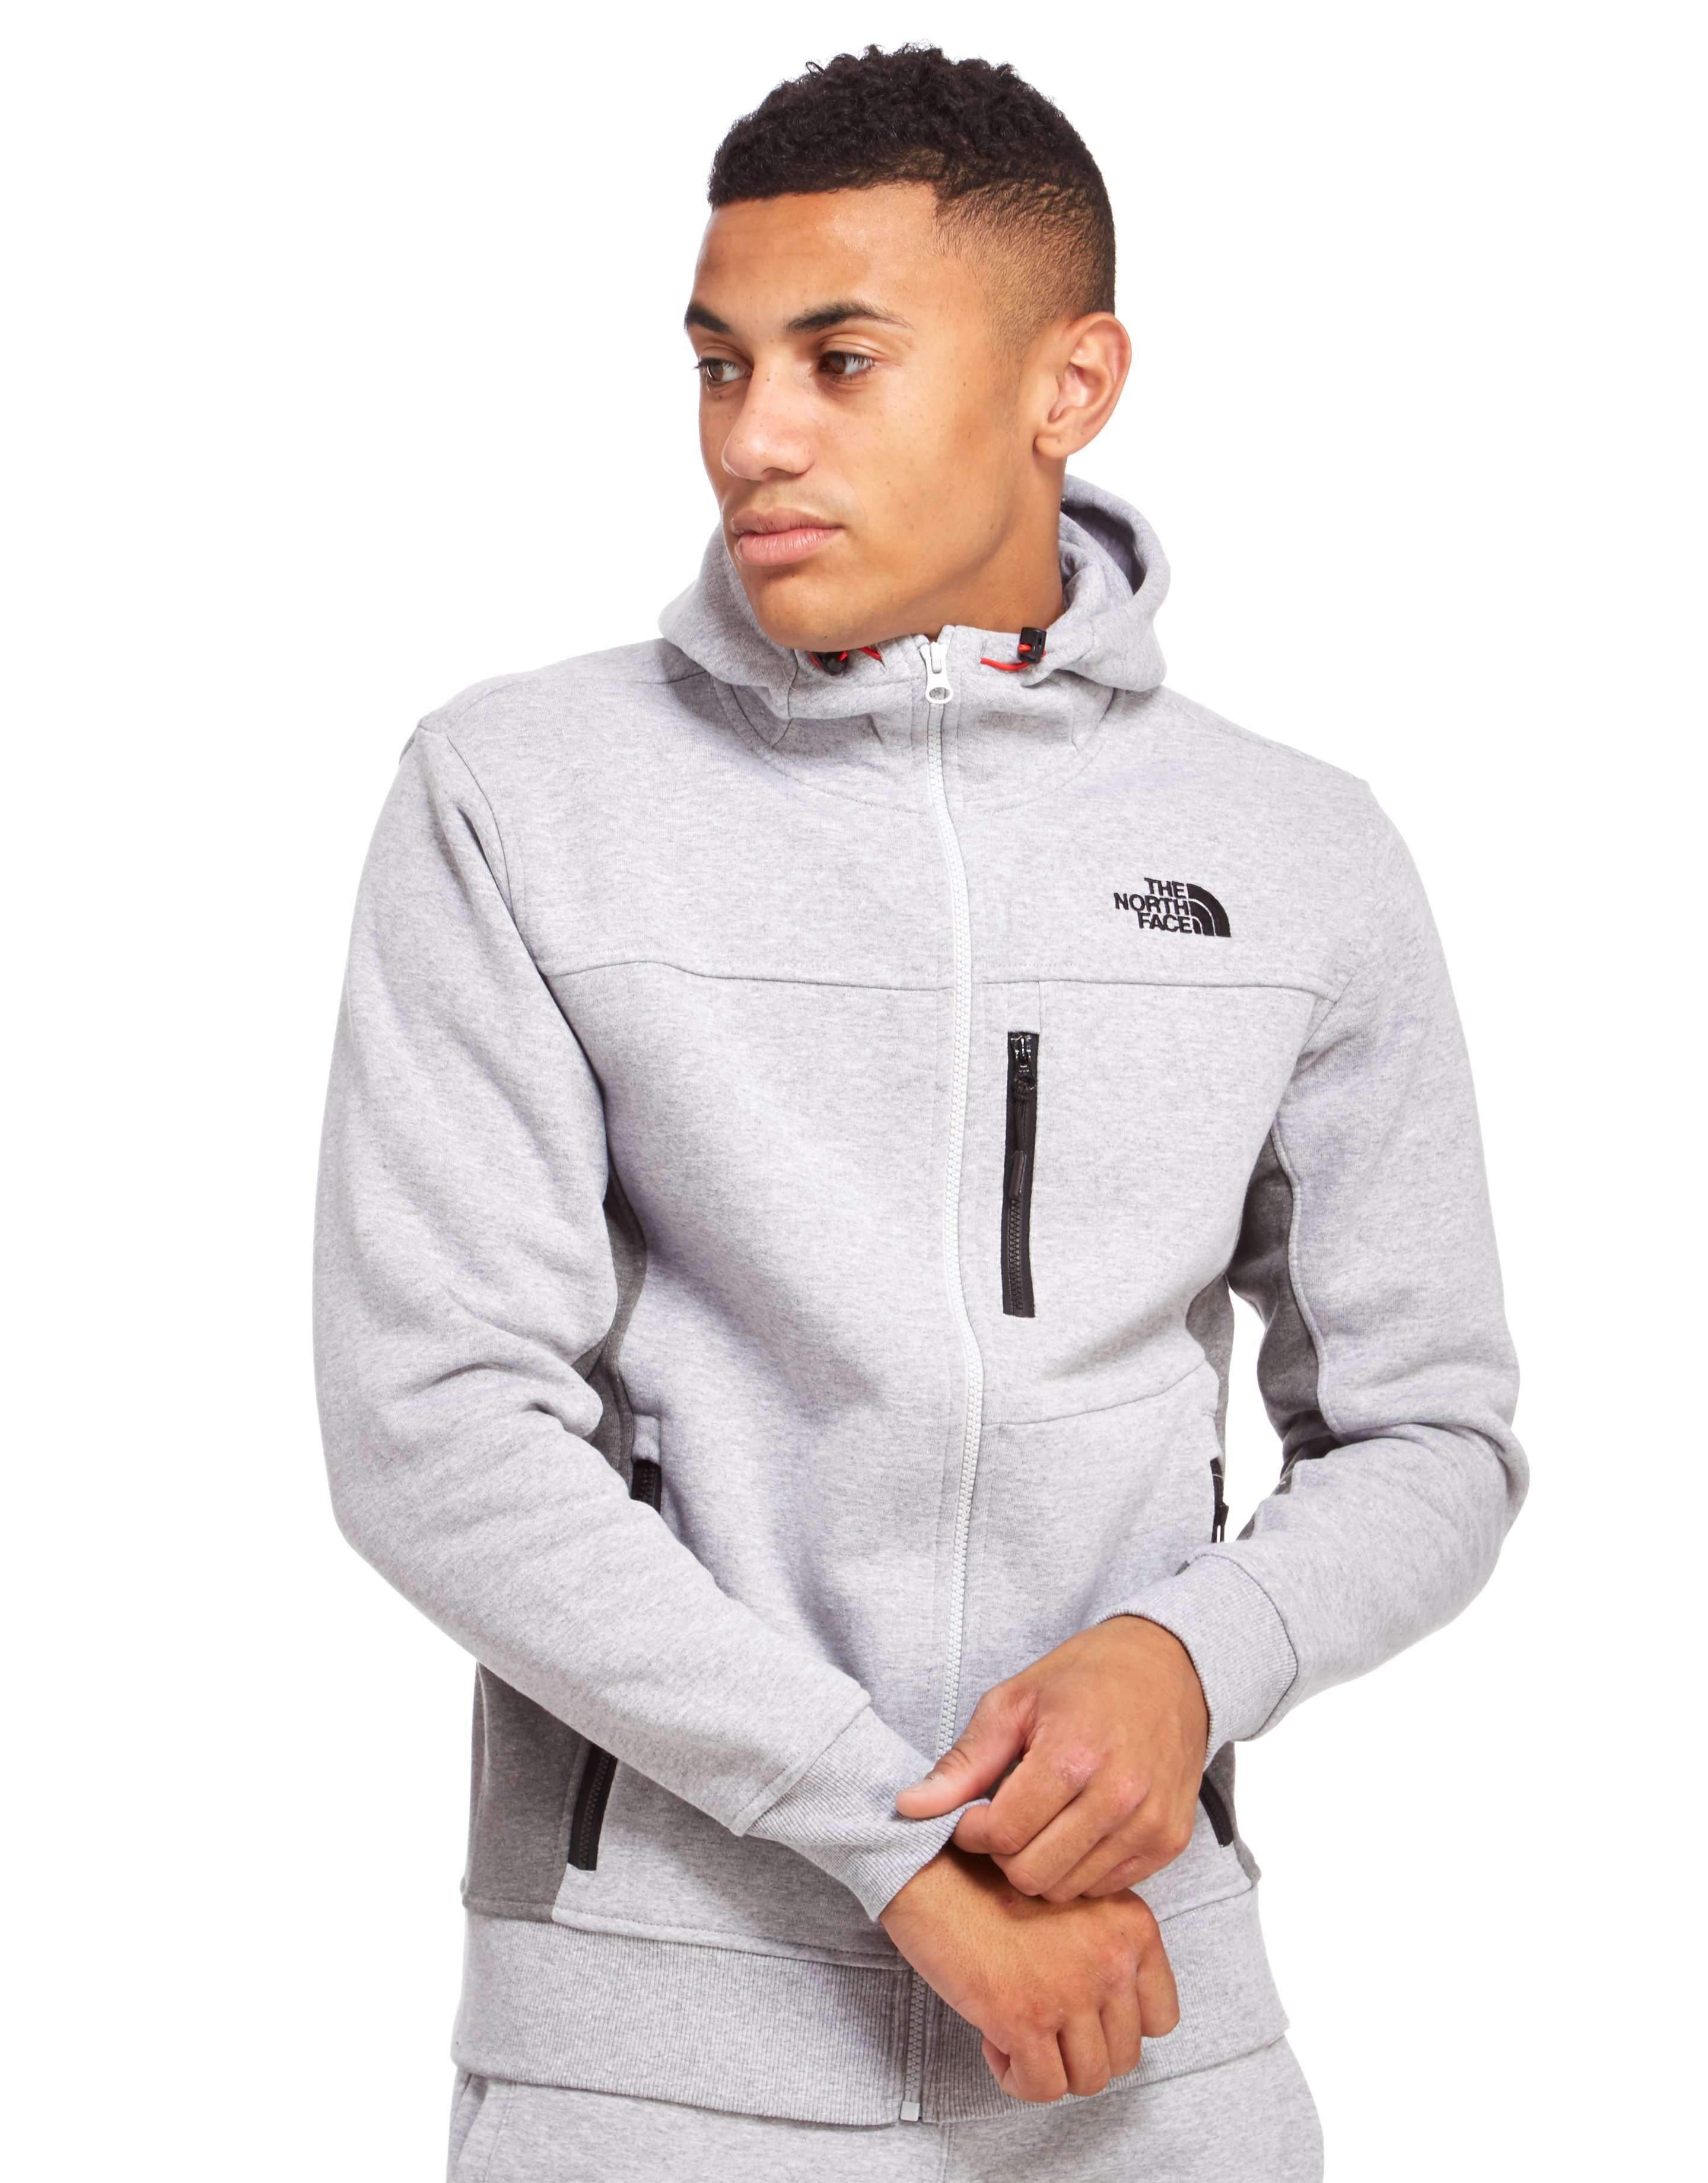 c238650b8 The North Face Mendoza Zip Up Hoody - Shop online for The North Face ...